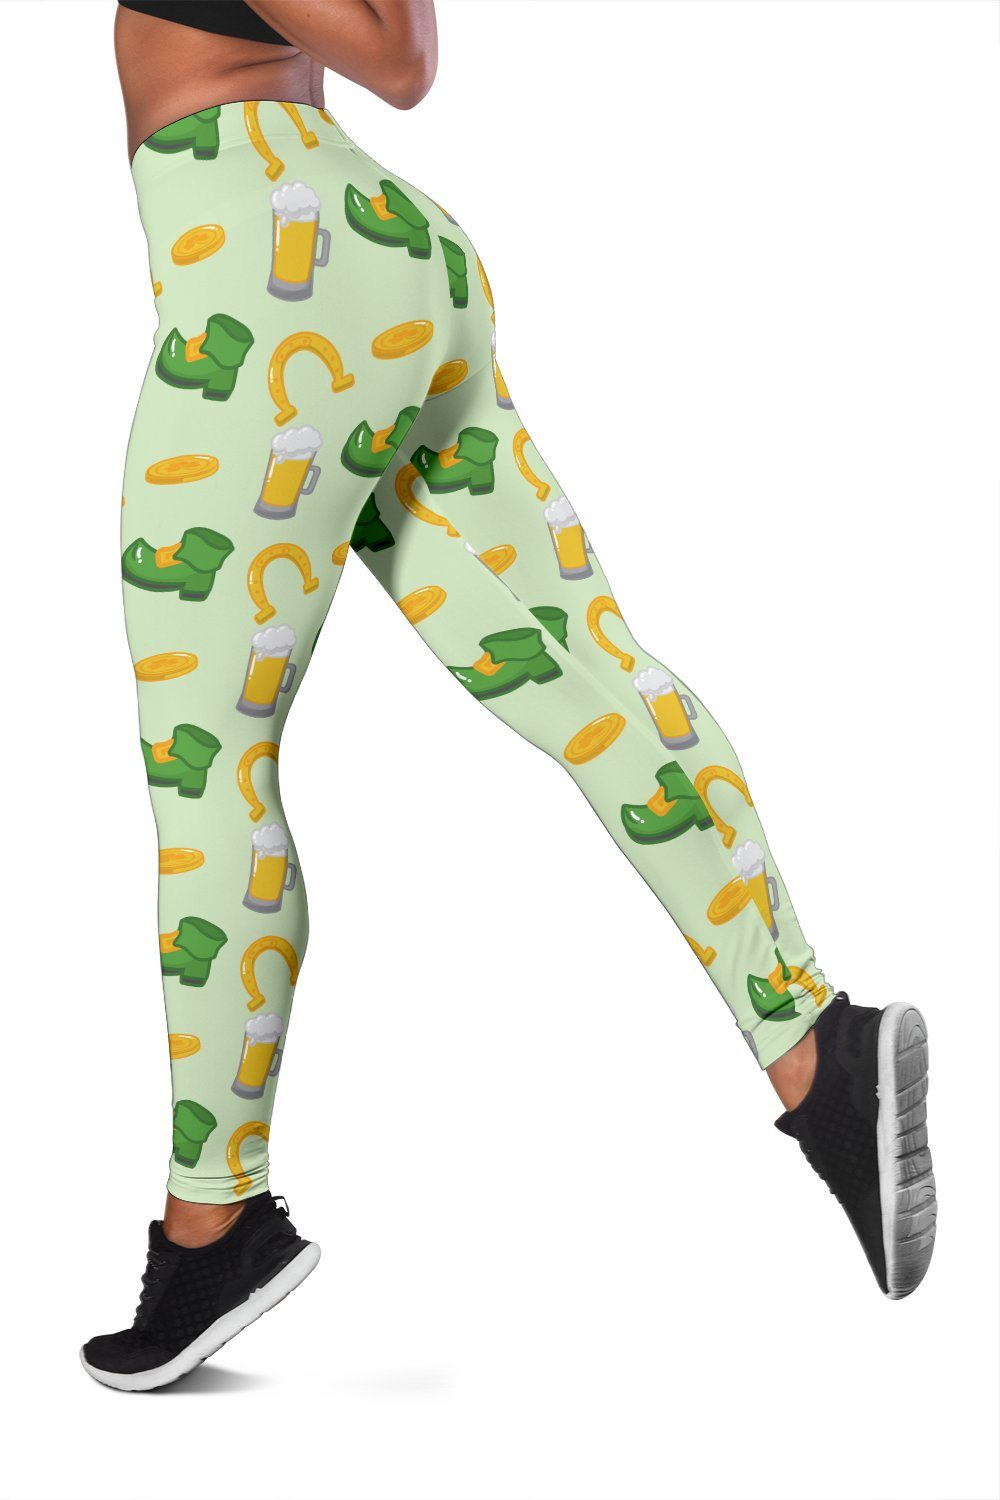 St. Patrick's Day Horseshoe, Boots, Beer Pattern Print Workout Leggings - Snappy Creations